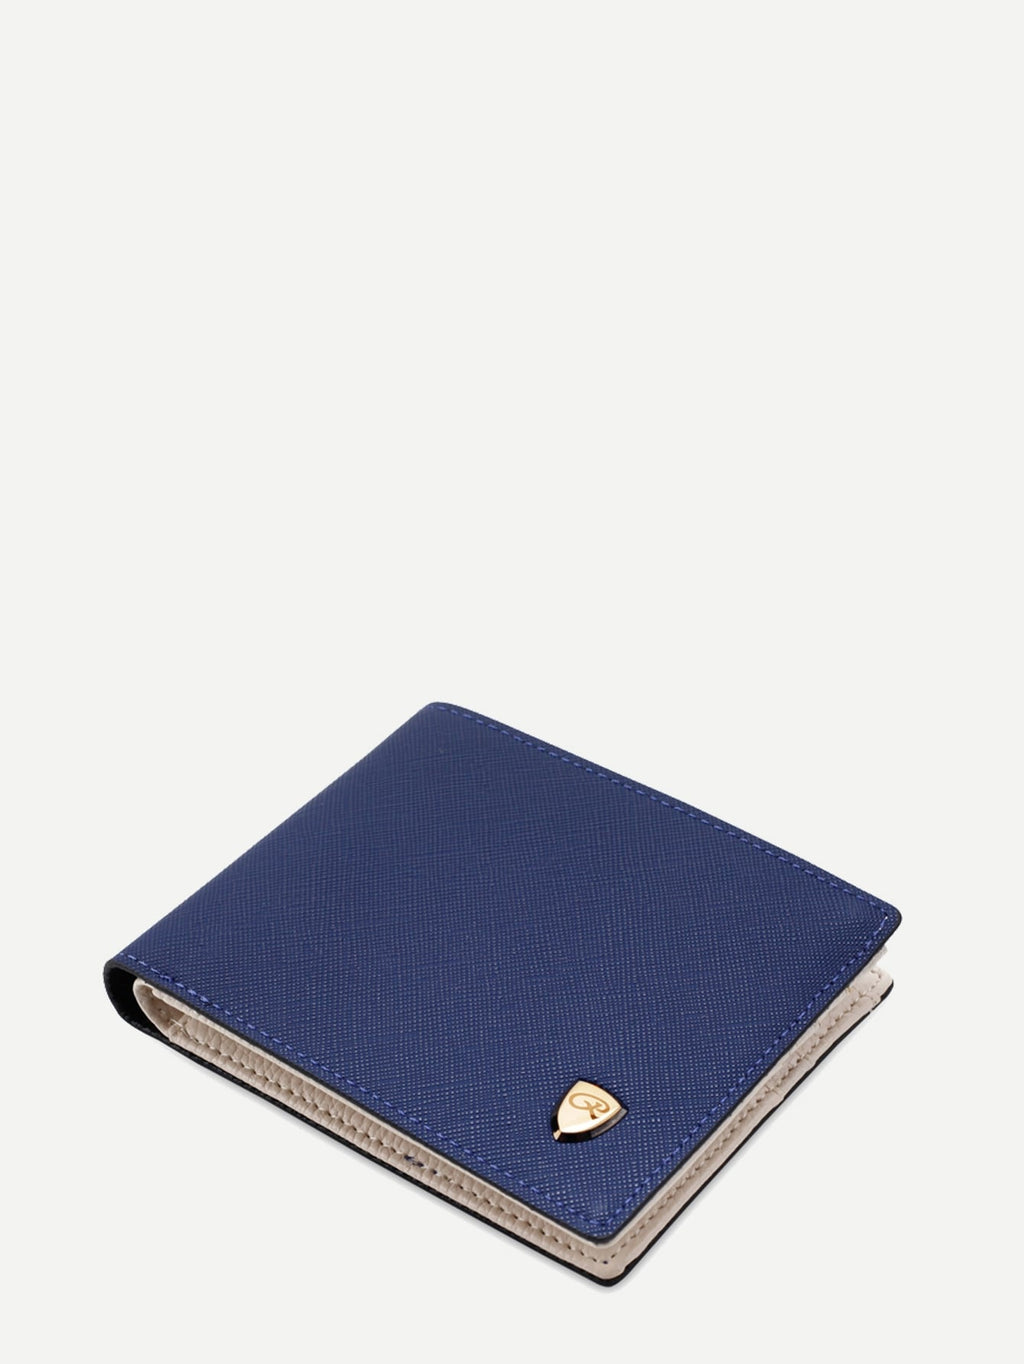 Men's Wallets - Fold Over Wallet With Card Holder